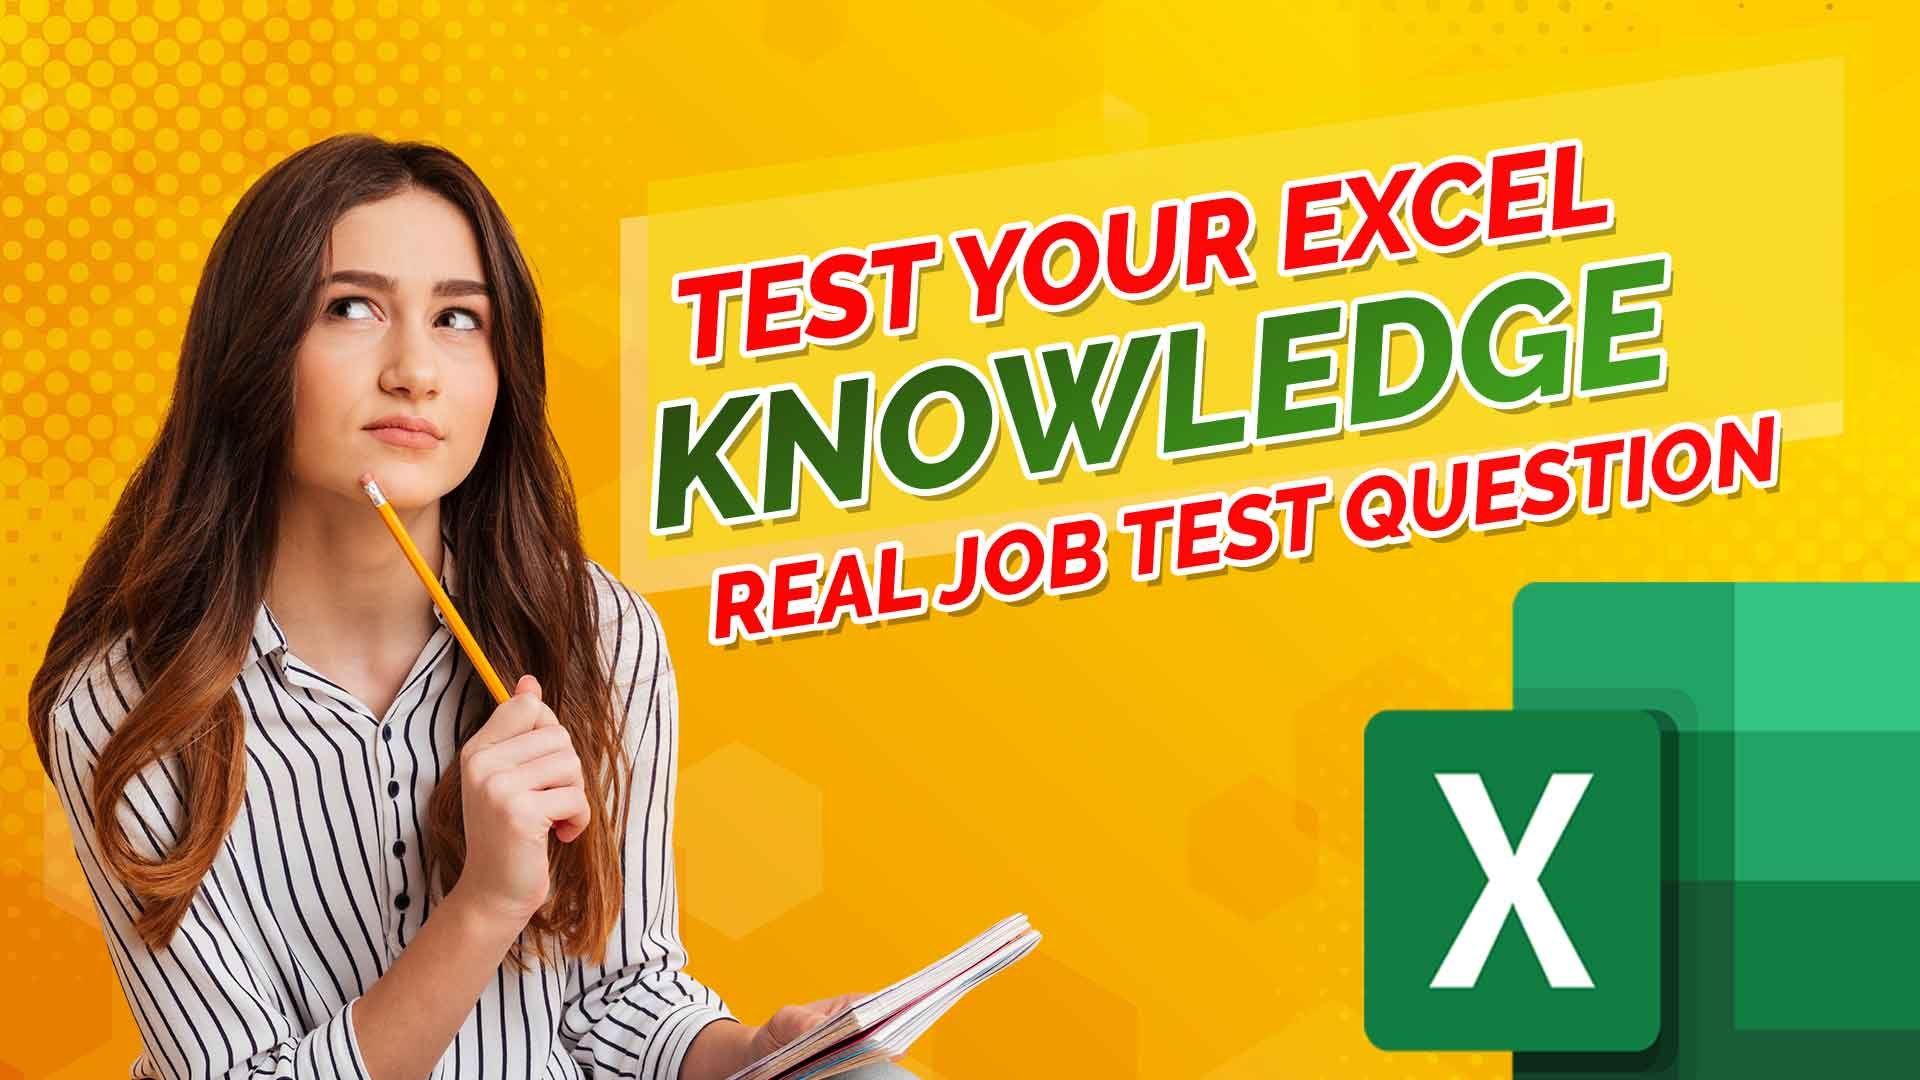 Test-Your-Excel-Knowledge---Real-Job-Test-Question-with-Answers